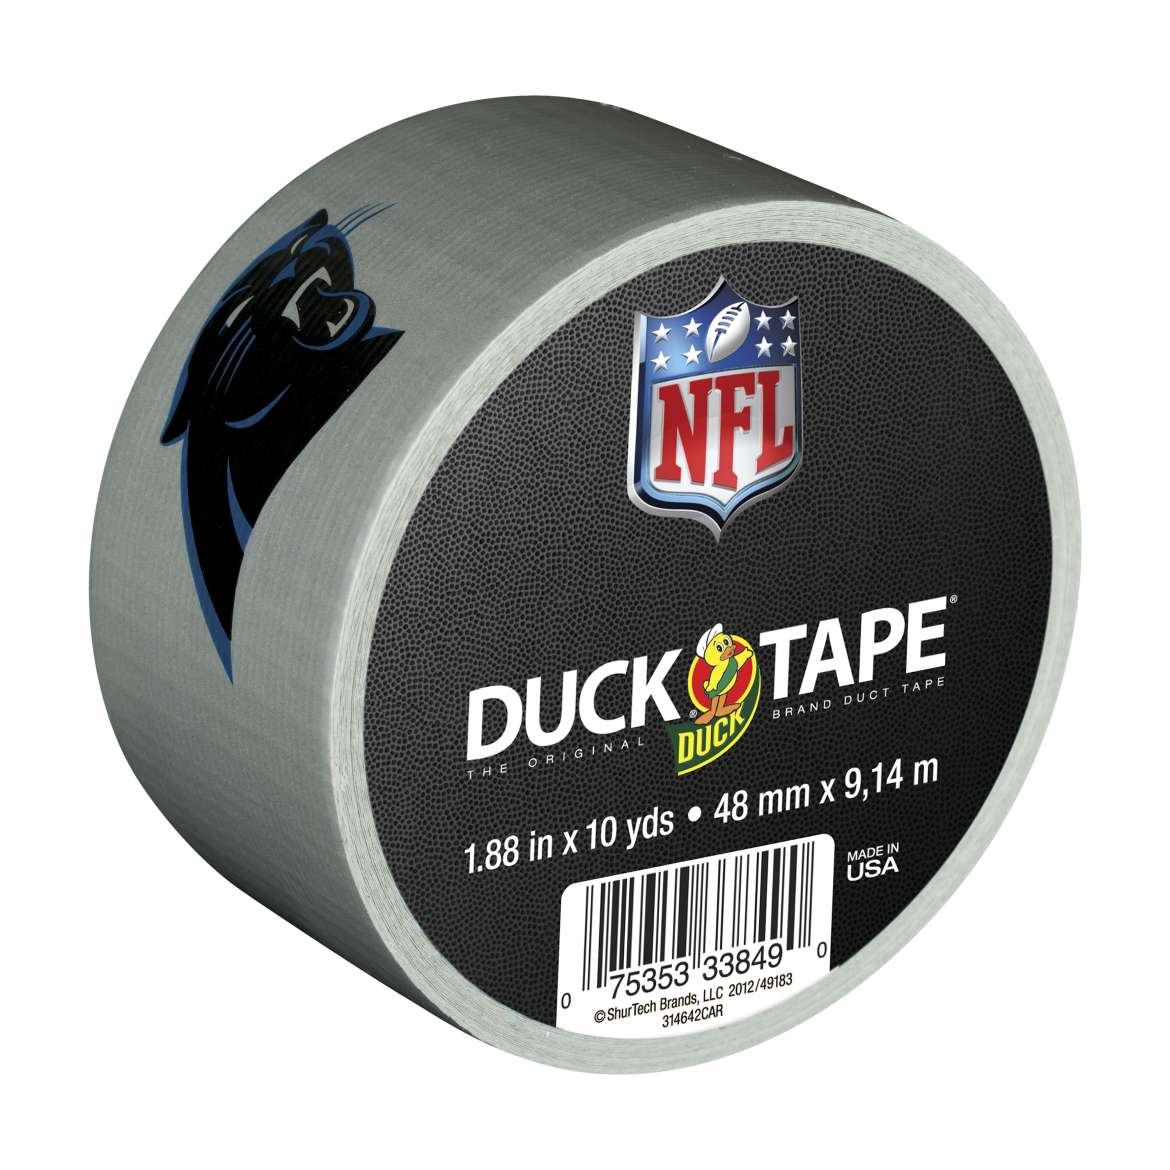 NFL Licensed Duck Tape Brand Duct Tape - Carolina Panthers, 1.88 in. x 10 yd.